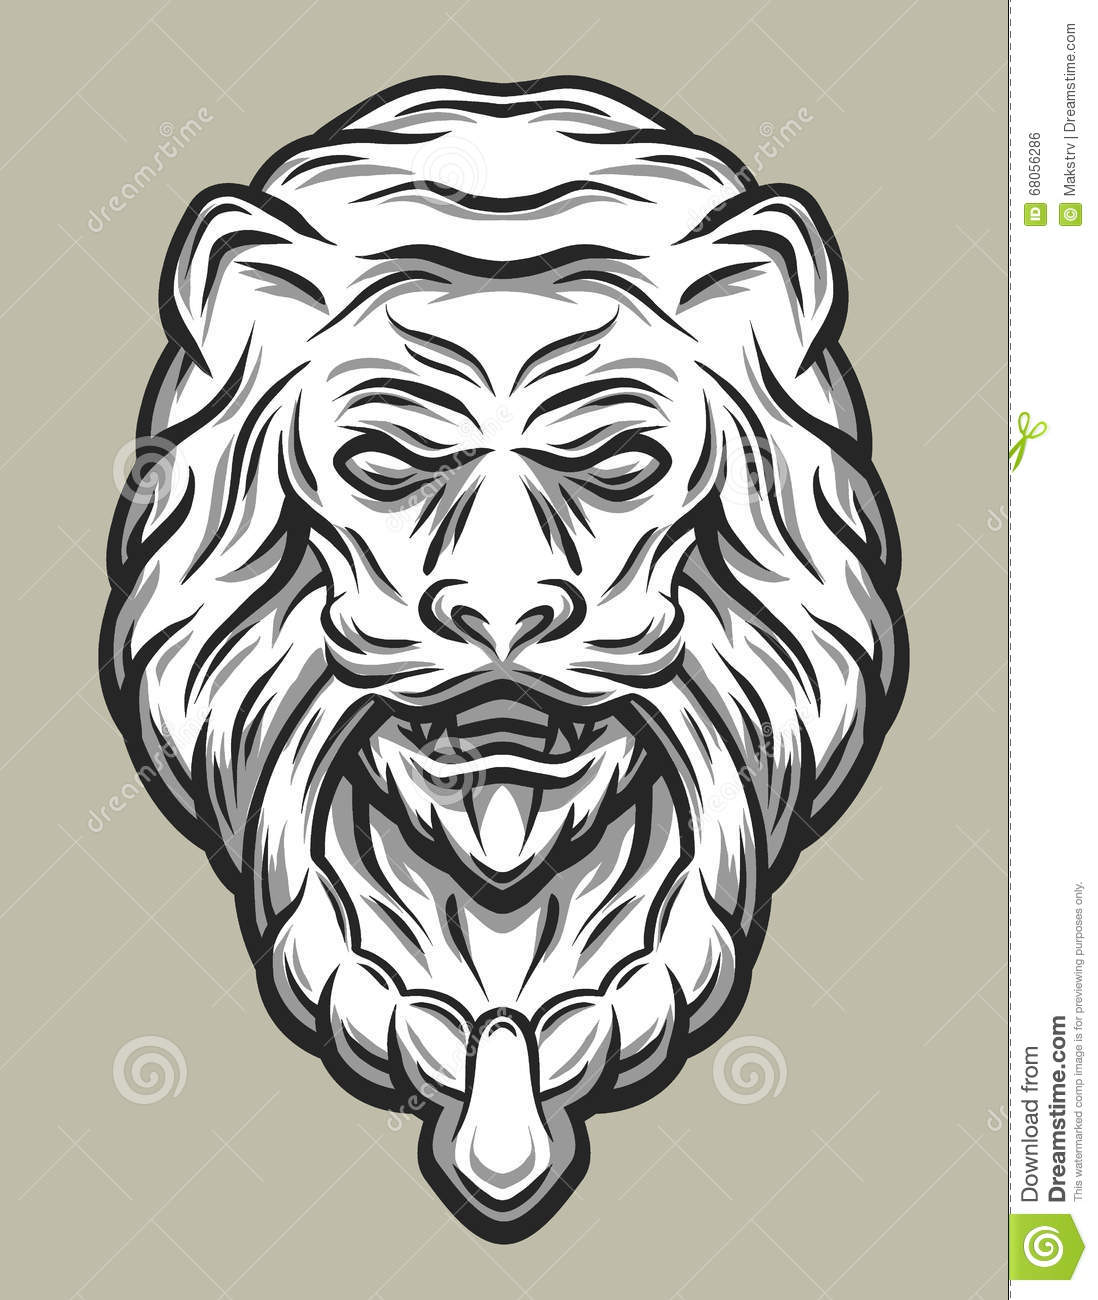 Line Art Styles : Llion head door knocker line art style stock vector